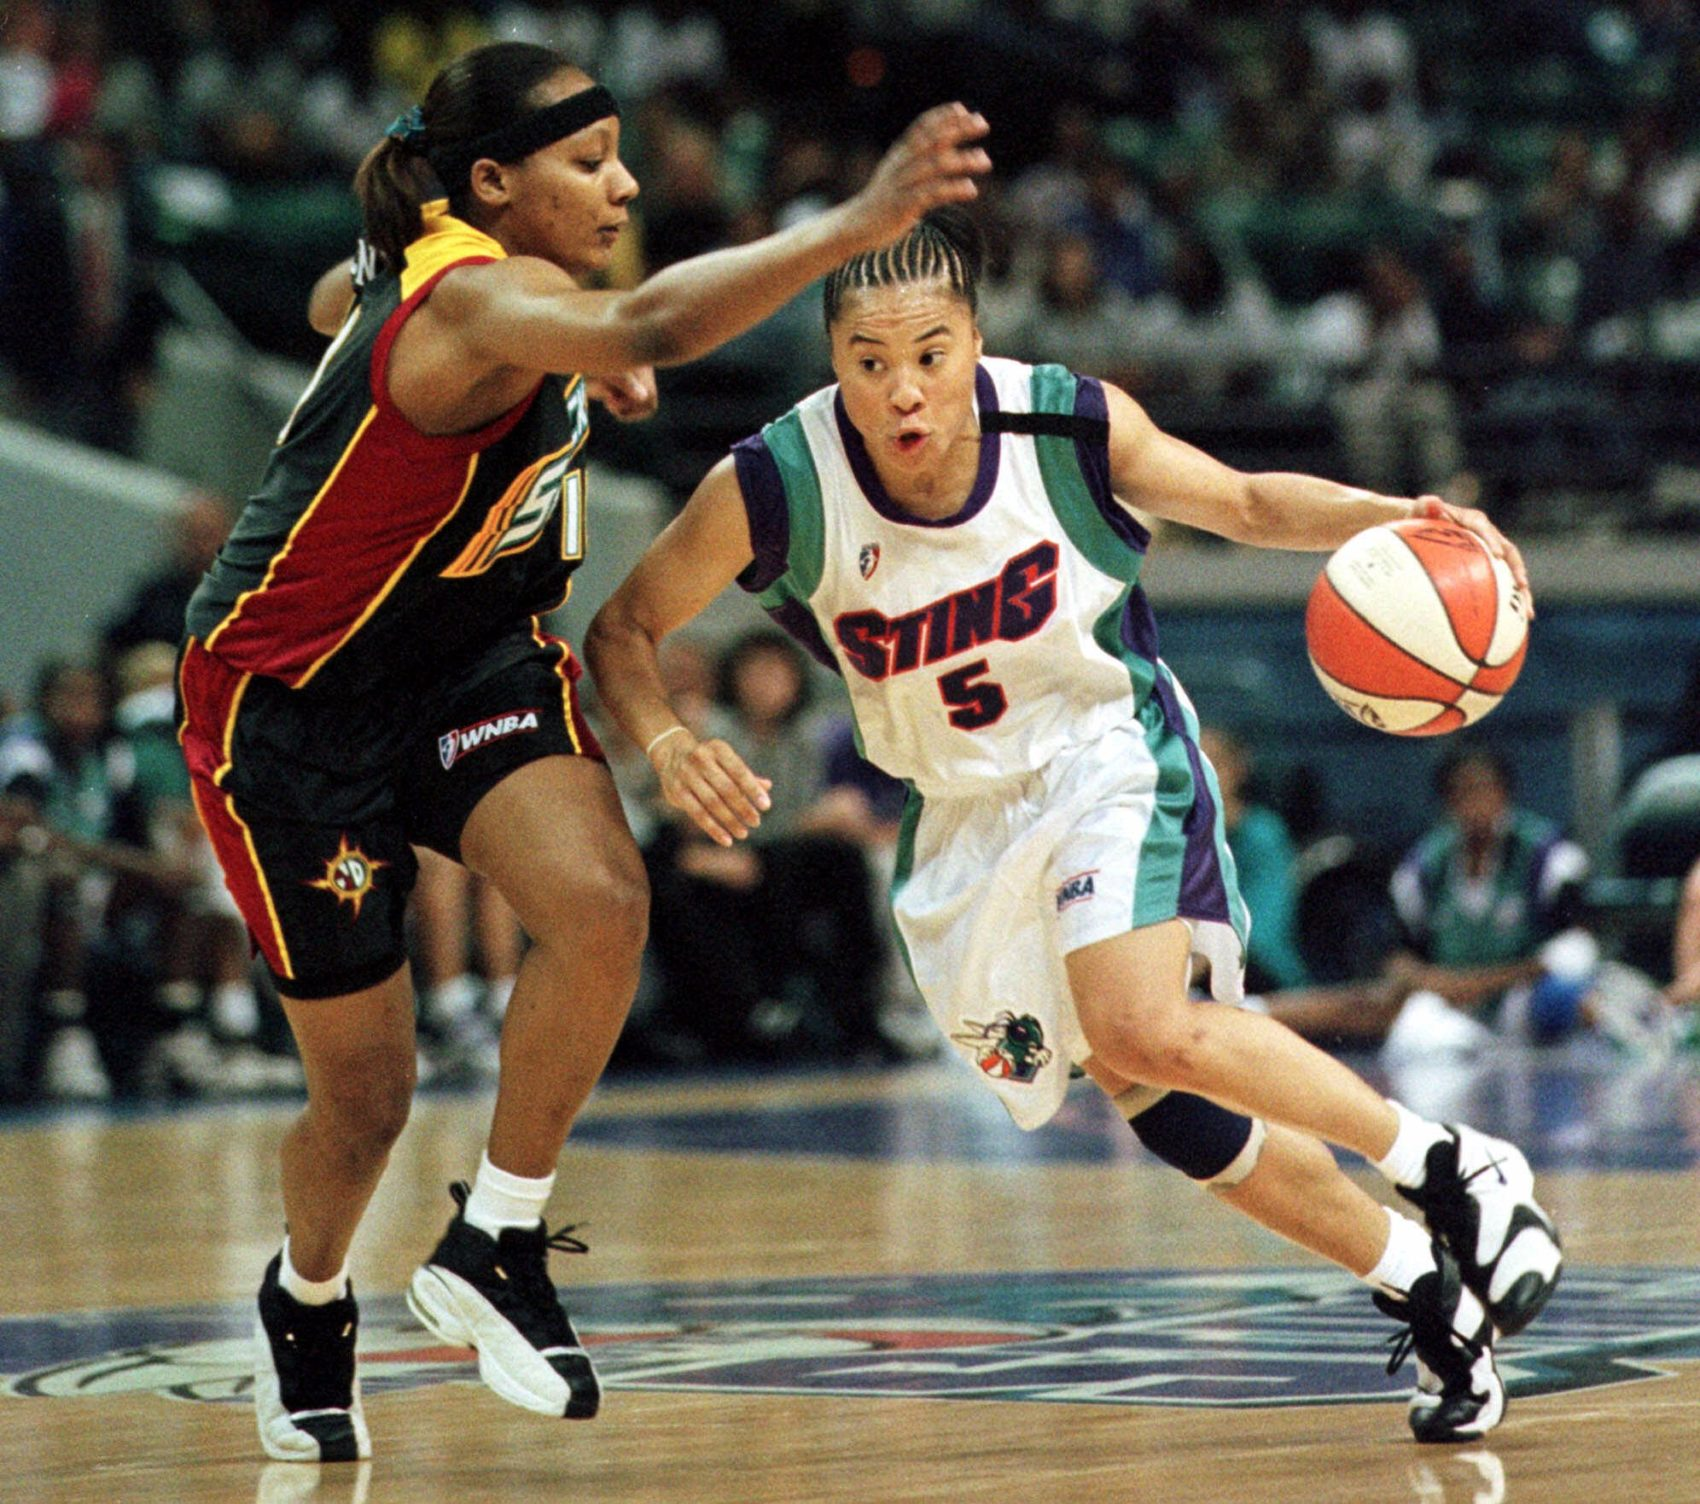 Dawn Staley was a six-time WNBA All-Star with the Charlotte Sting and Houston Comets. (Nell Redmond/AP)